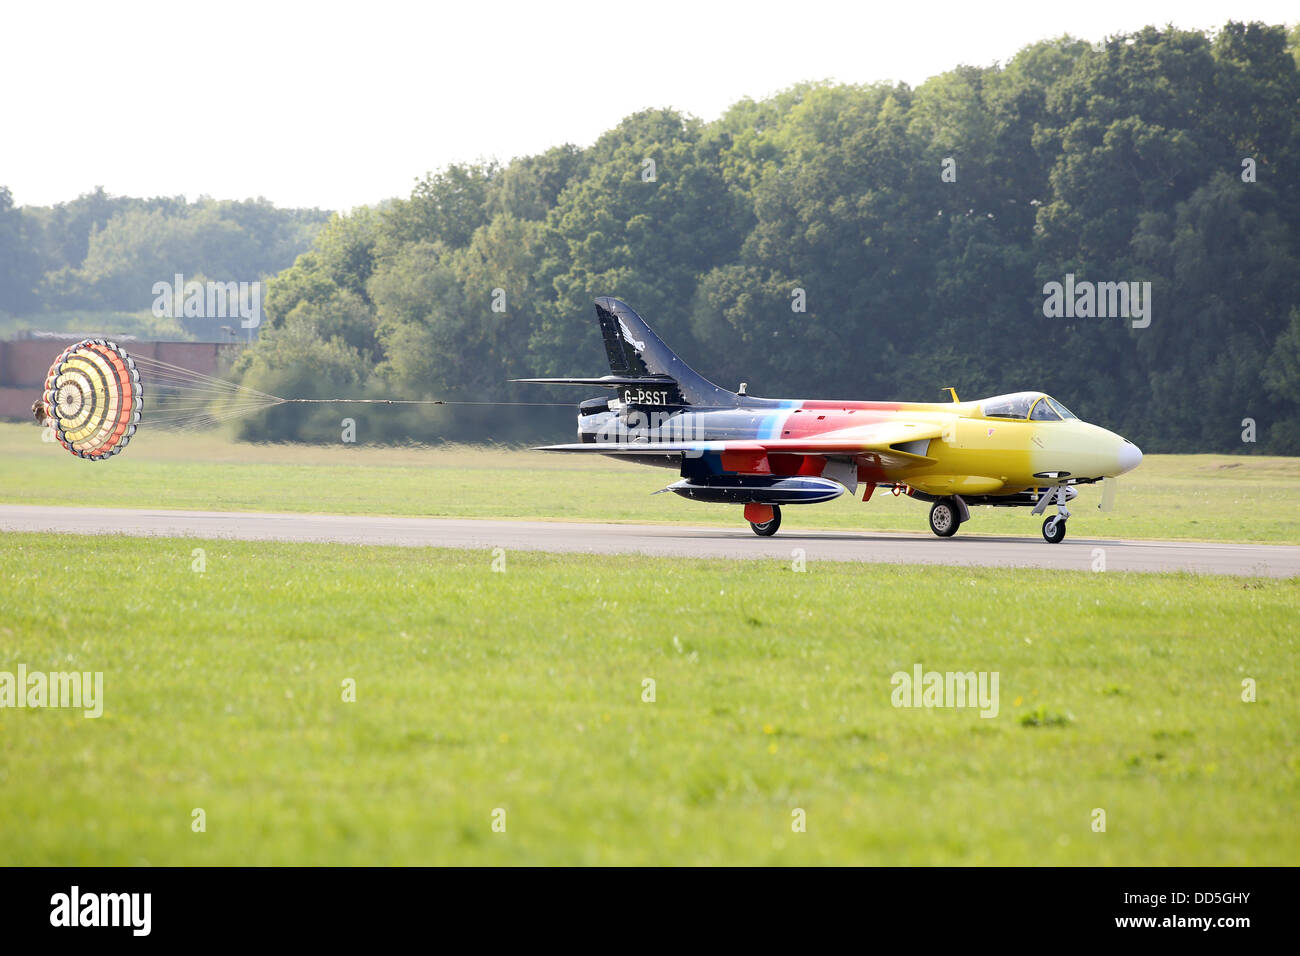 The Hawker Hunter (Miss Demeanour) pictured  at Wings and Wheels, Dunsfold, Surrey today with a spectacular display.The Stock Photo